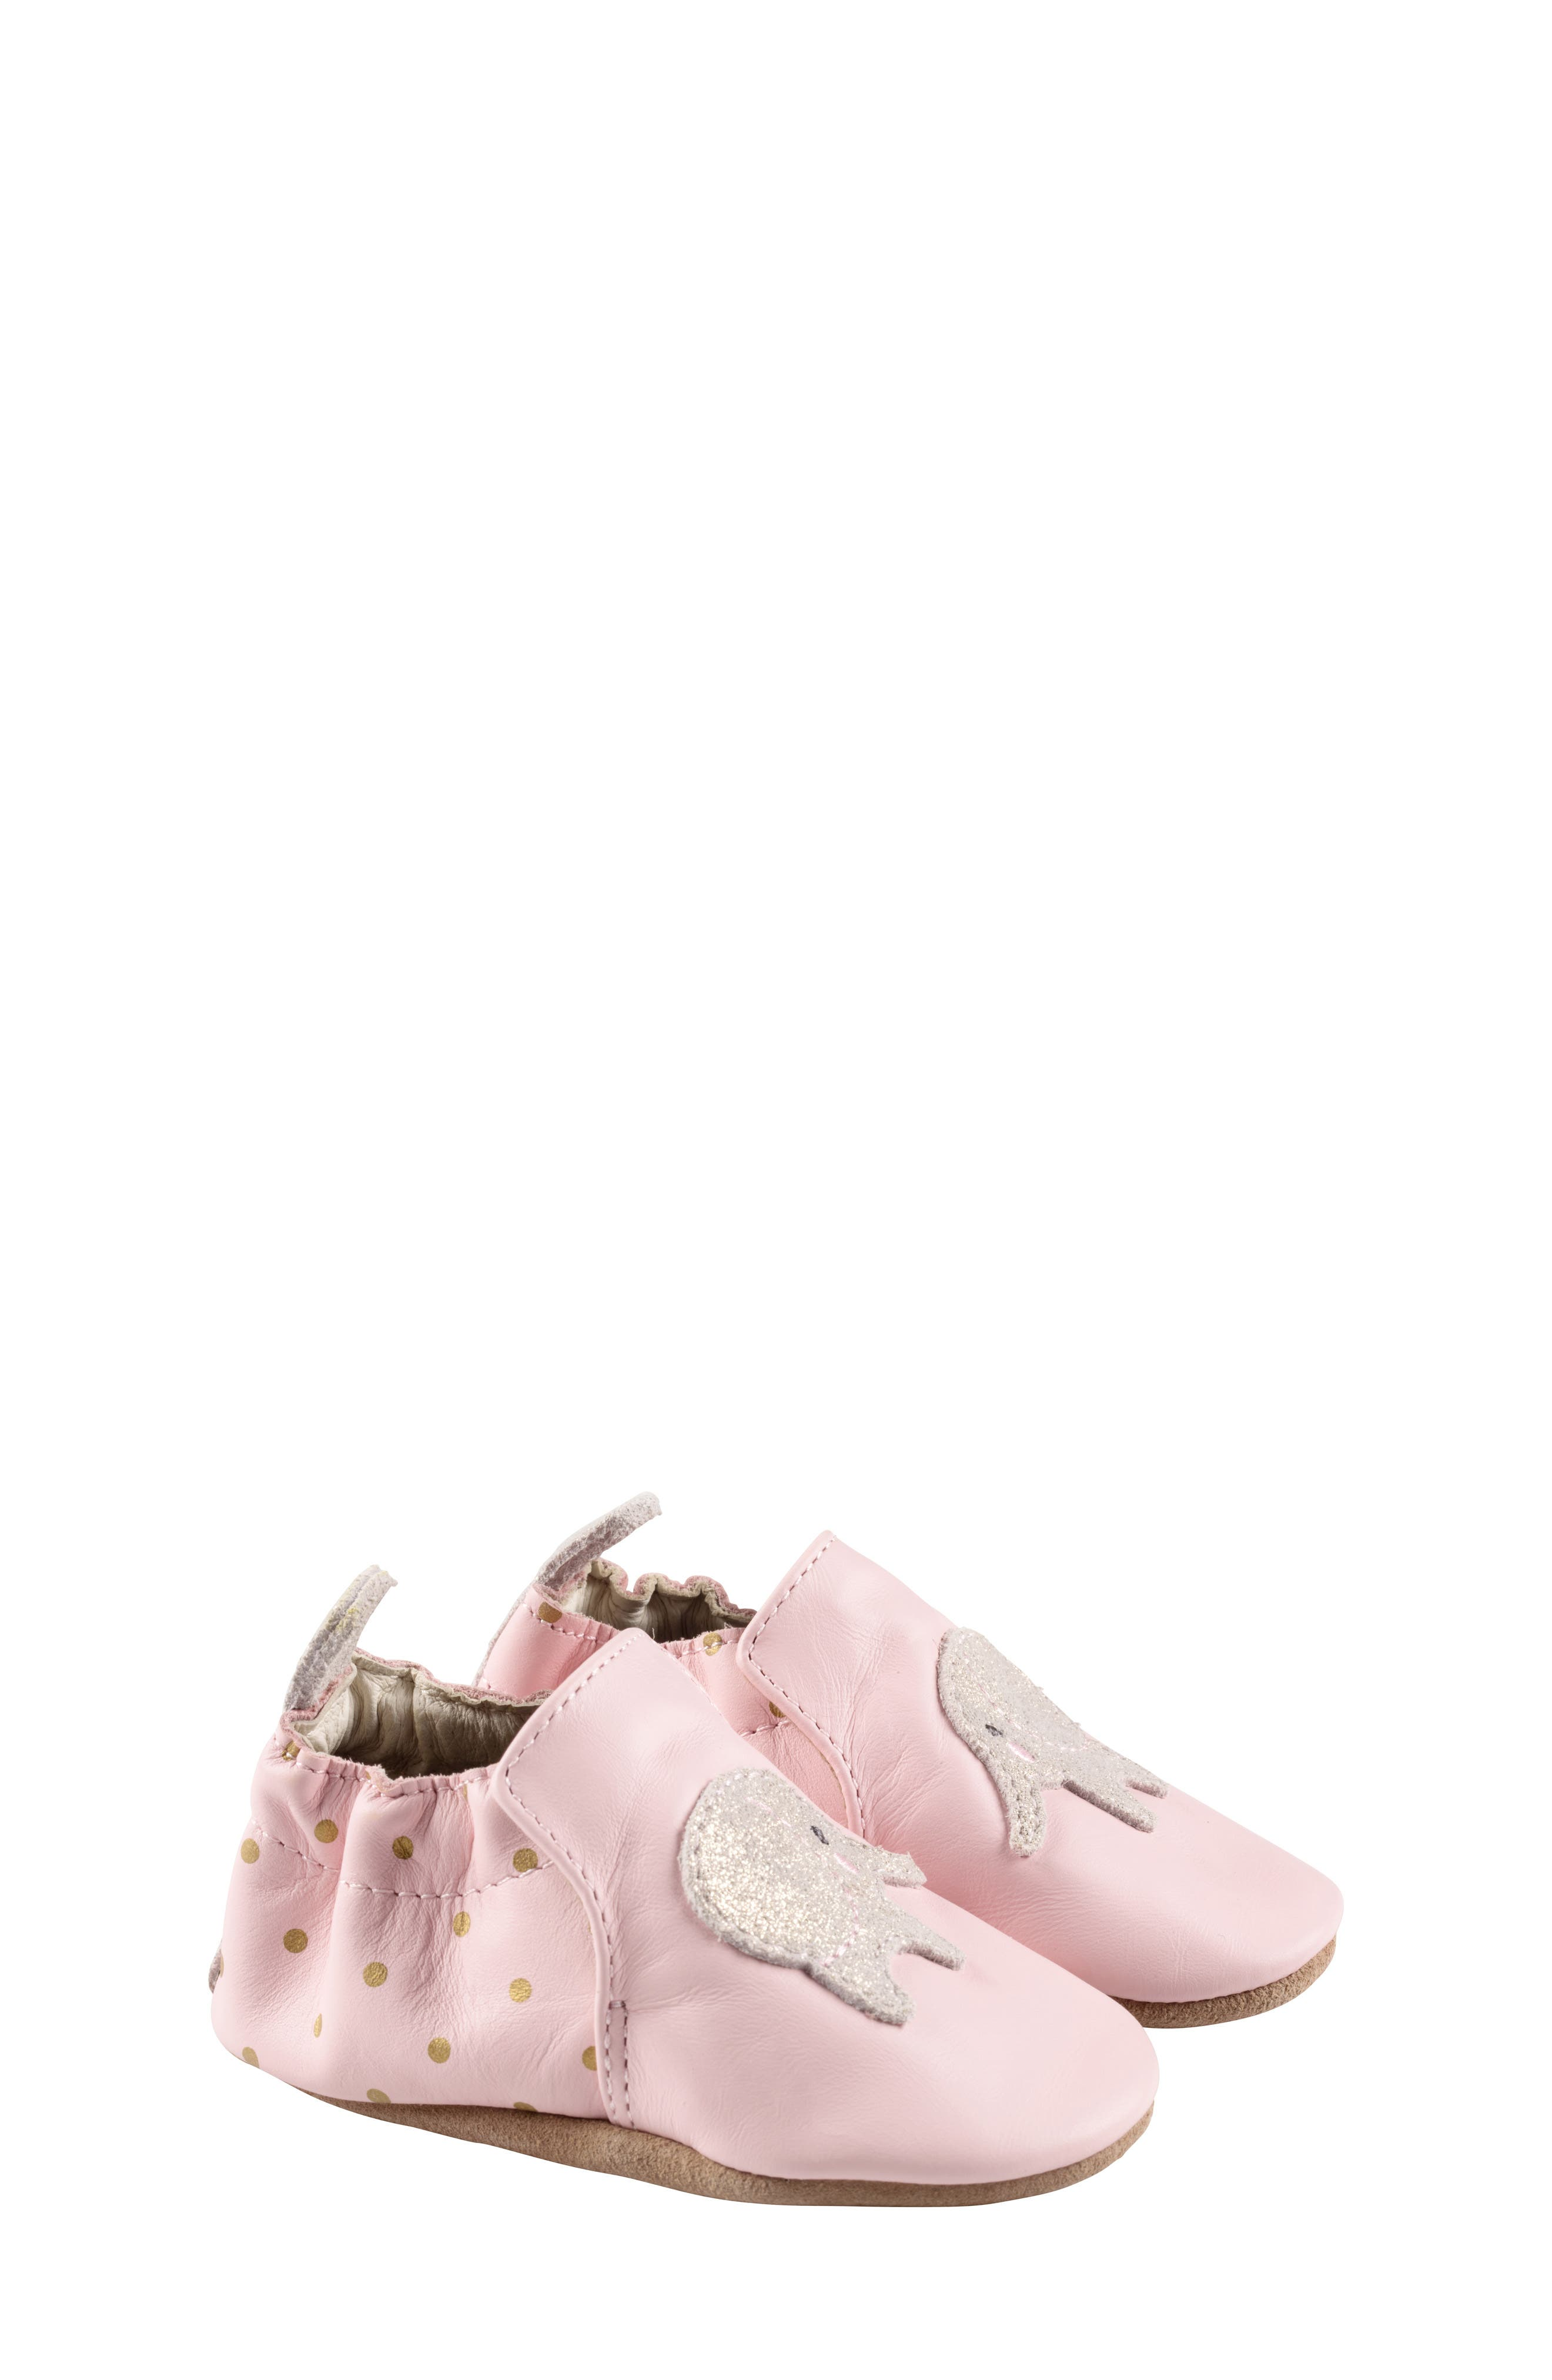 Girls' Robeez® Shoes | Nordstrom